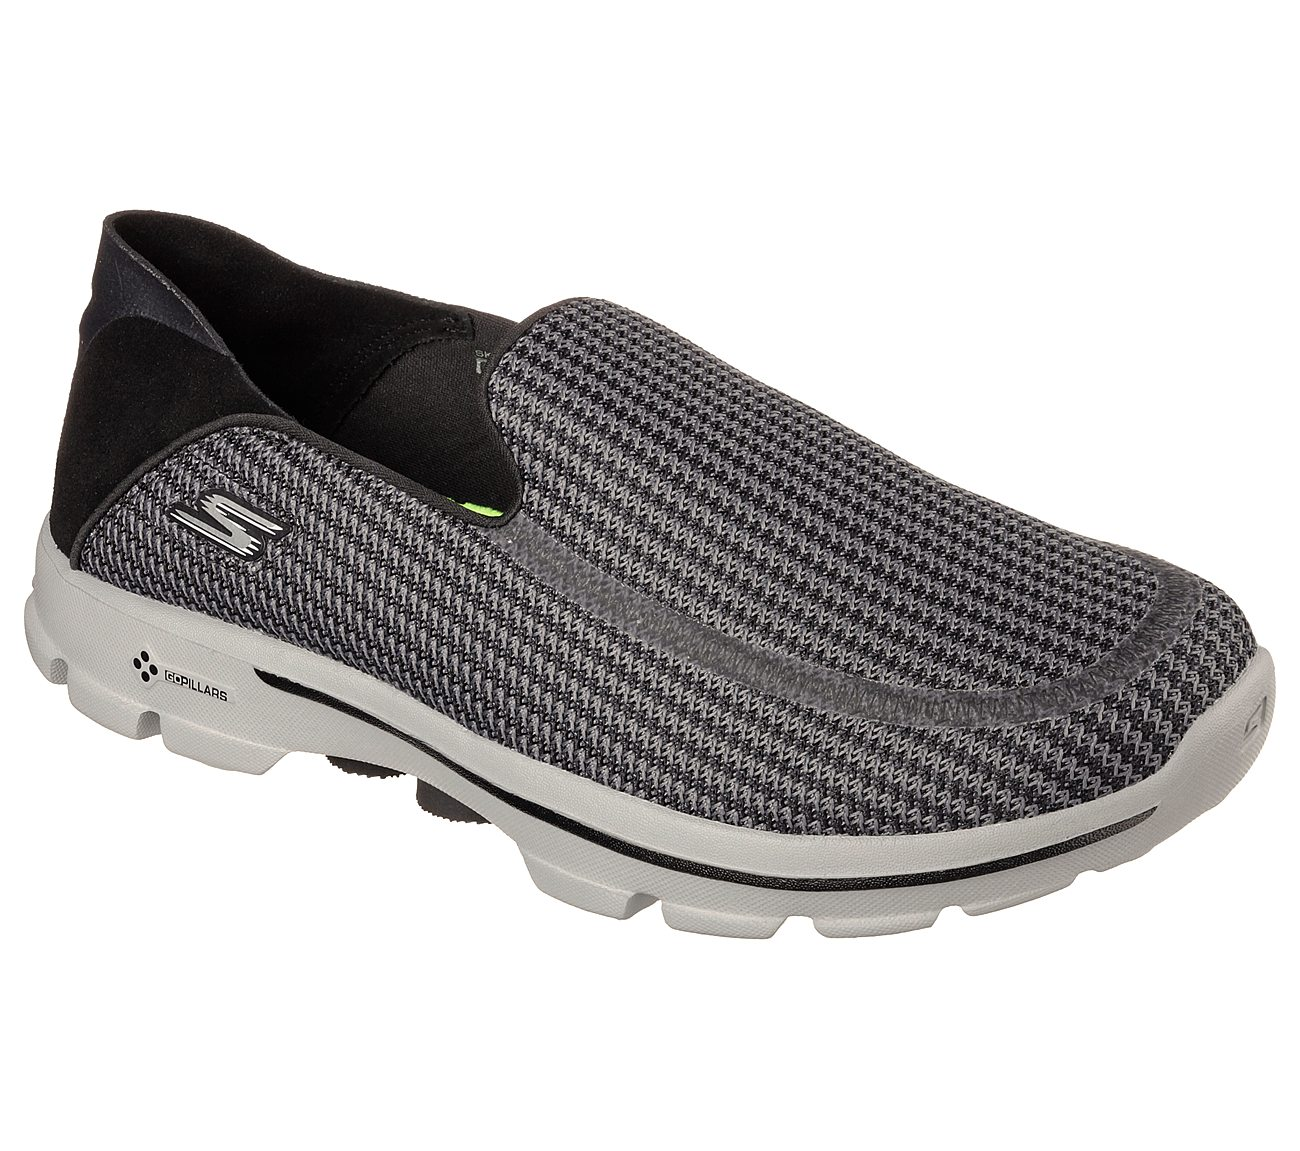 Buy SKECHERS Skechers GOwalk 3 - Lounge Skechers Performance Shoes ... acf32c579f